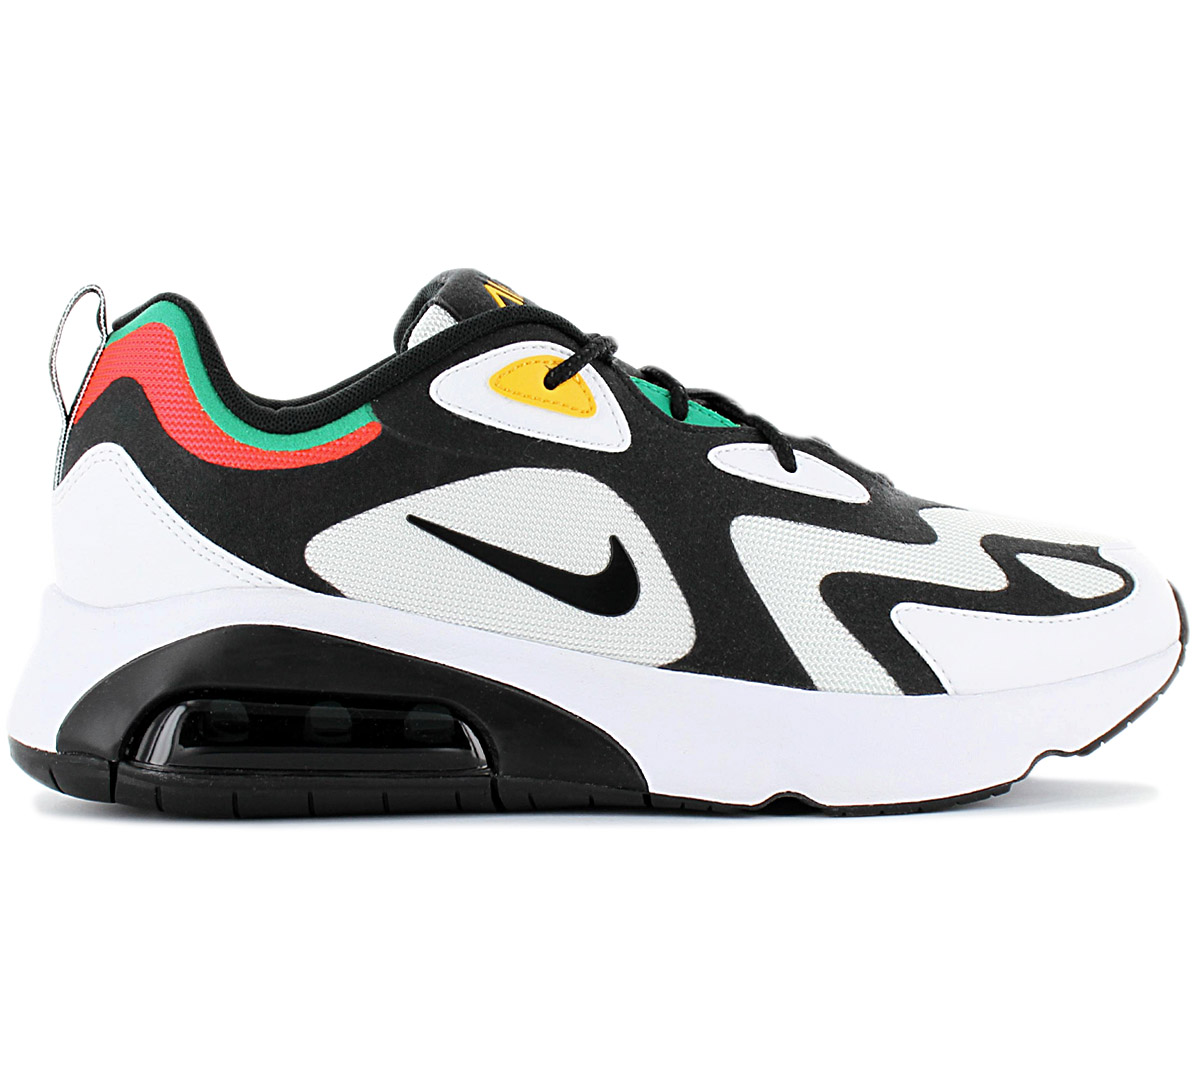 Details about NEW Nike Air Max 200 AQ2568 101 Men´s Shoes Trainers Sneakers SALE